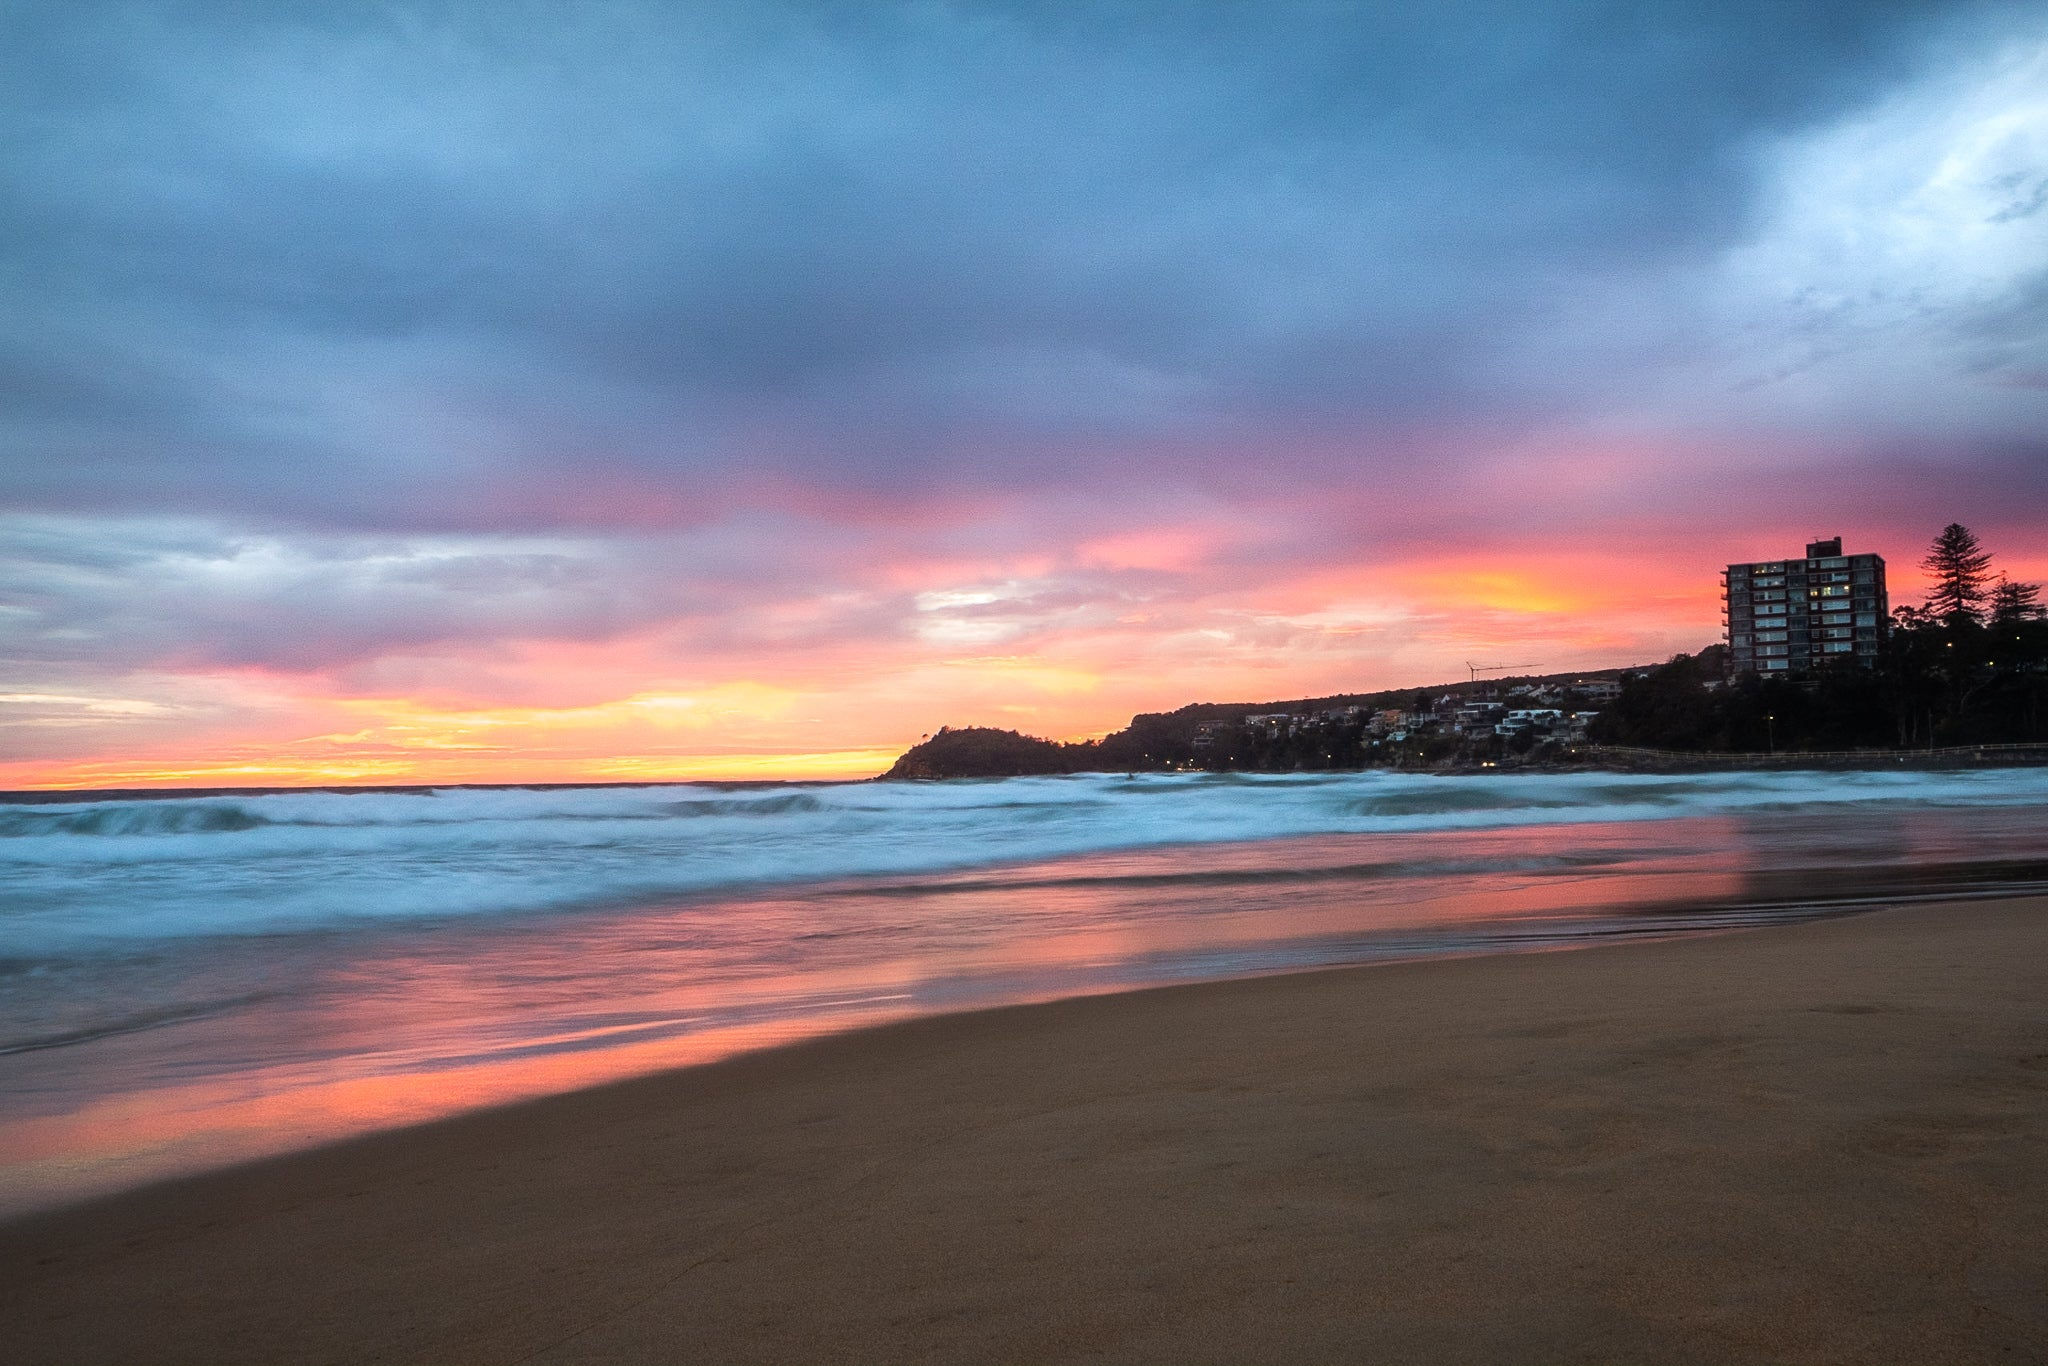 Sunrise photo from the 3rd May 2019 at Manly beach in Sydney